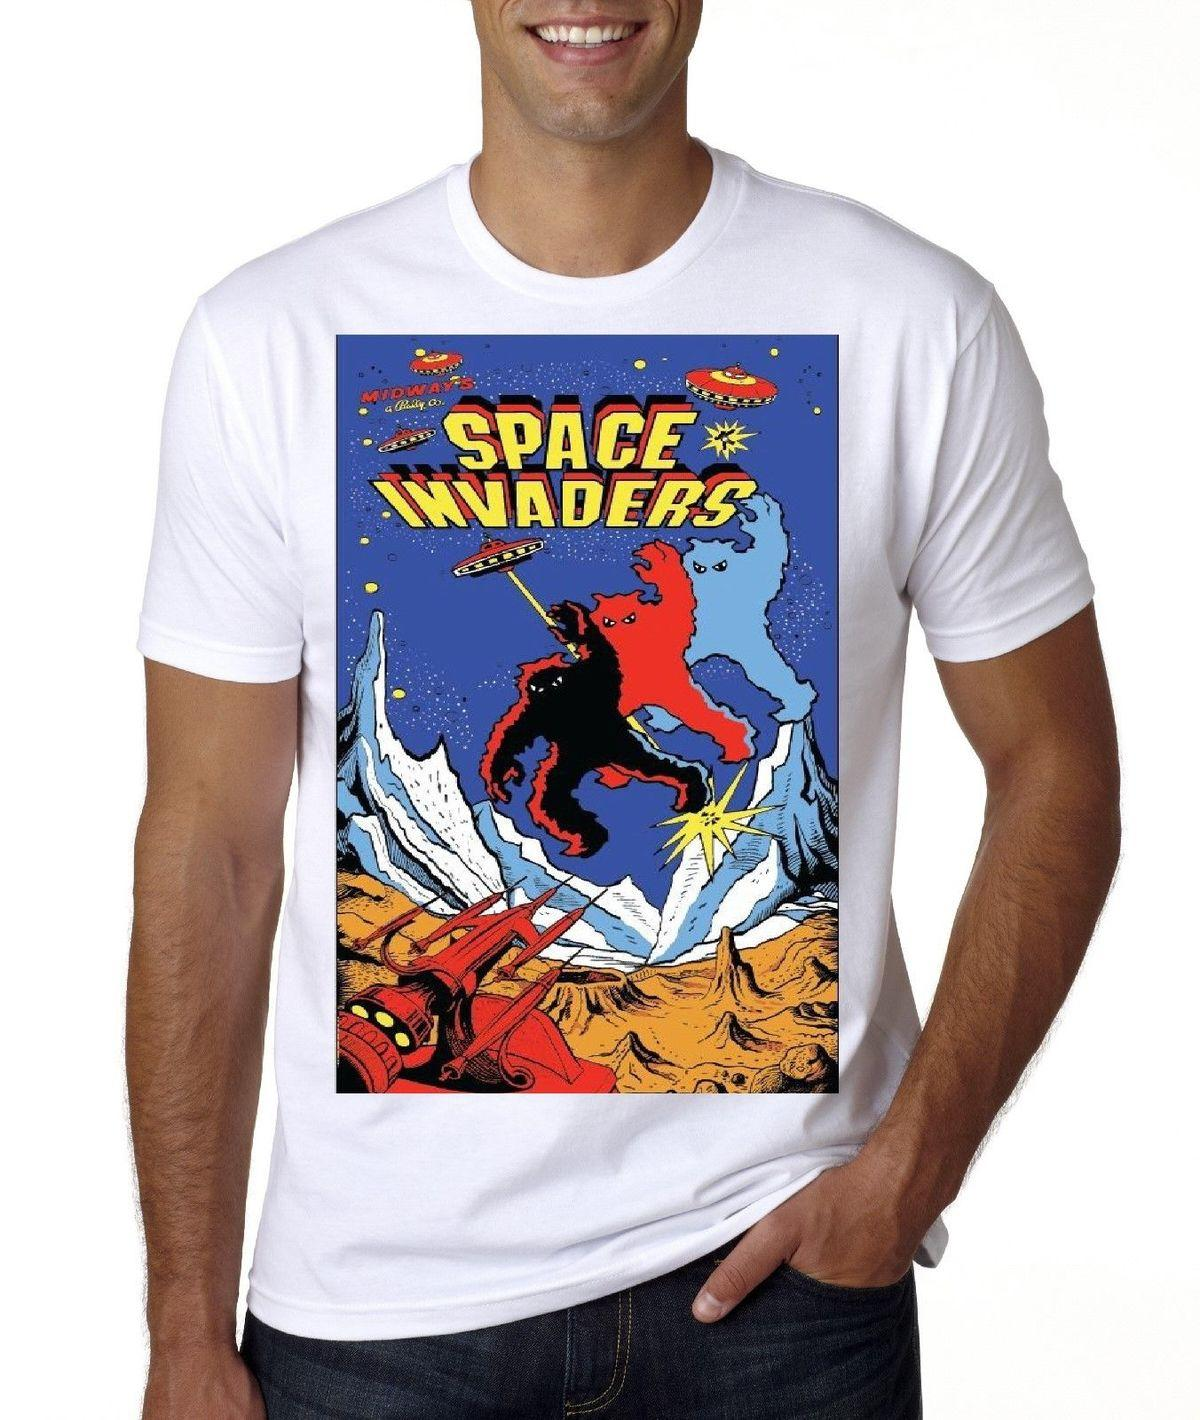 Retro Gamer Space Invaders T Shirt Kids To Adult Sizes Designer